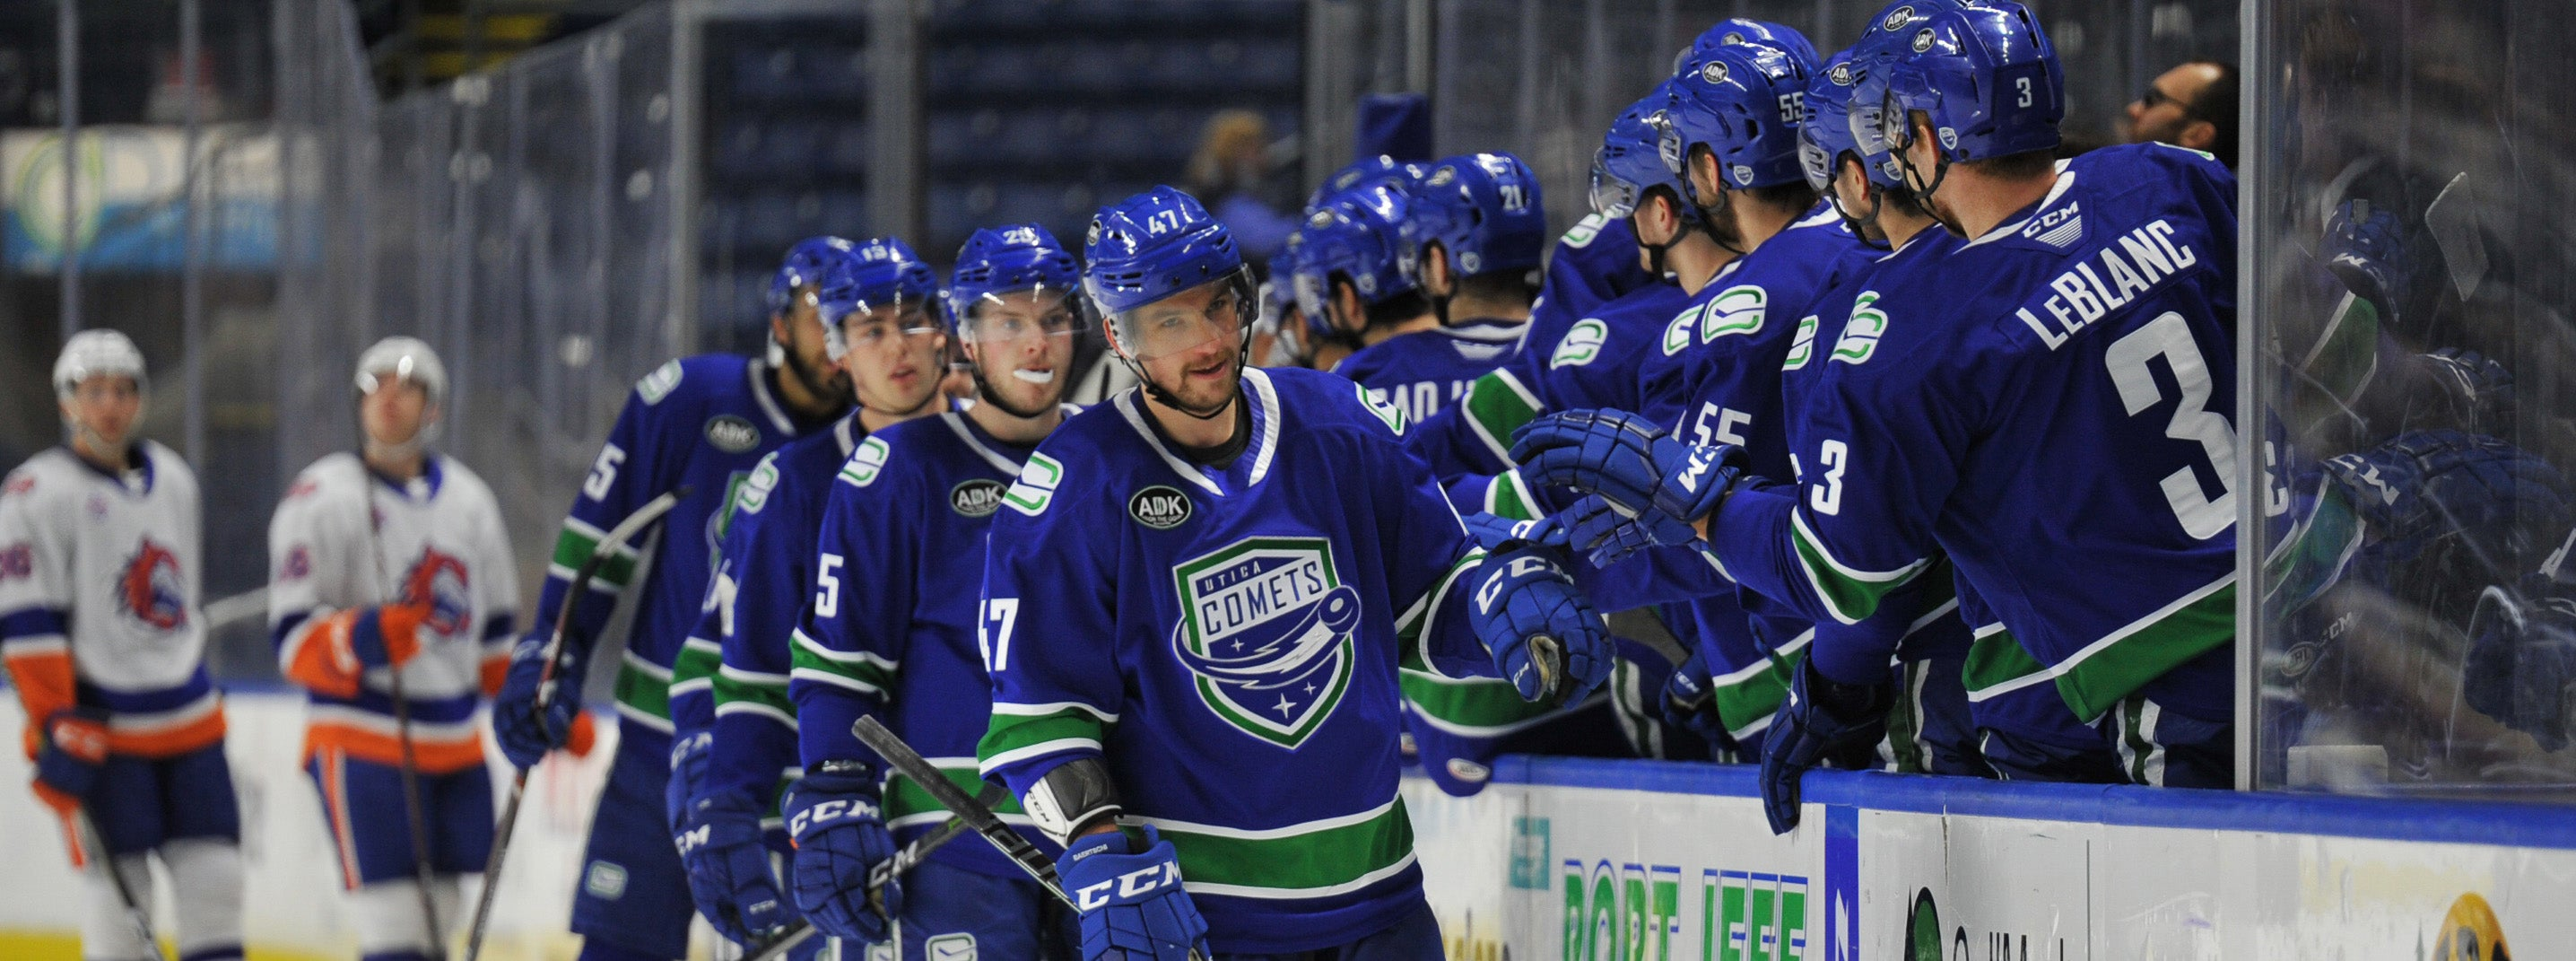 THIRD PERIOD FLURRY HELPS COMETS COMES FROM BEHIND